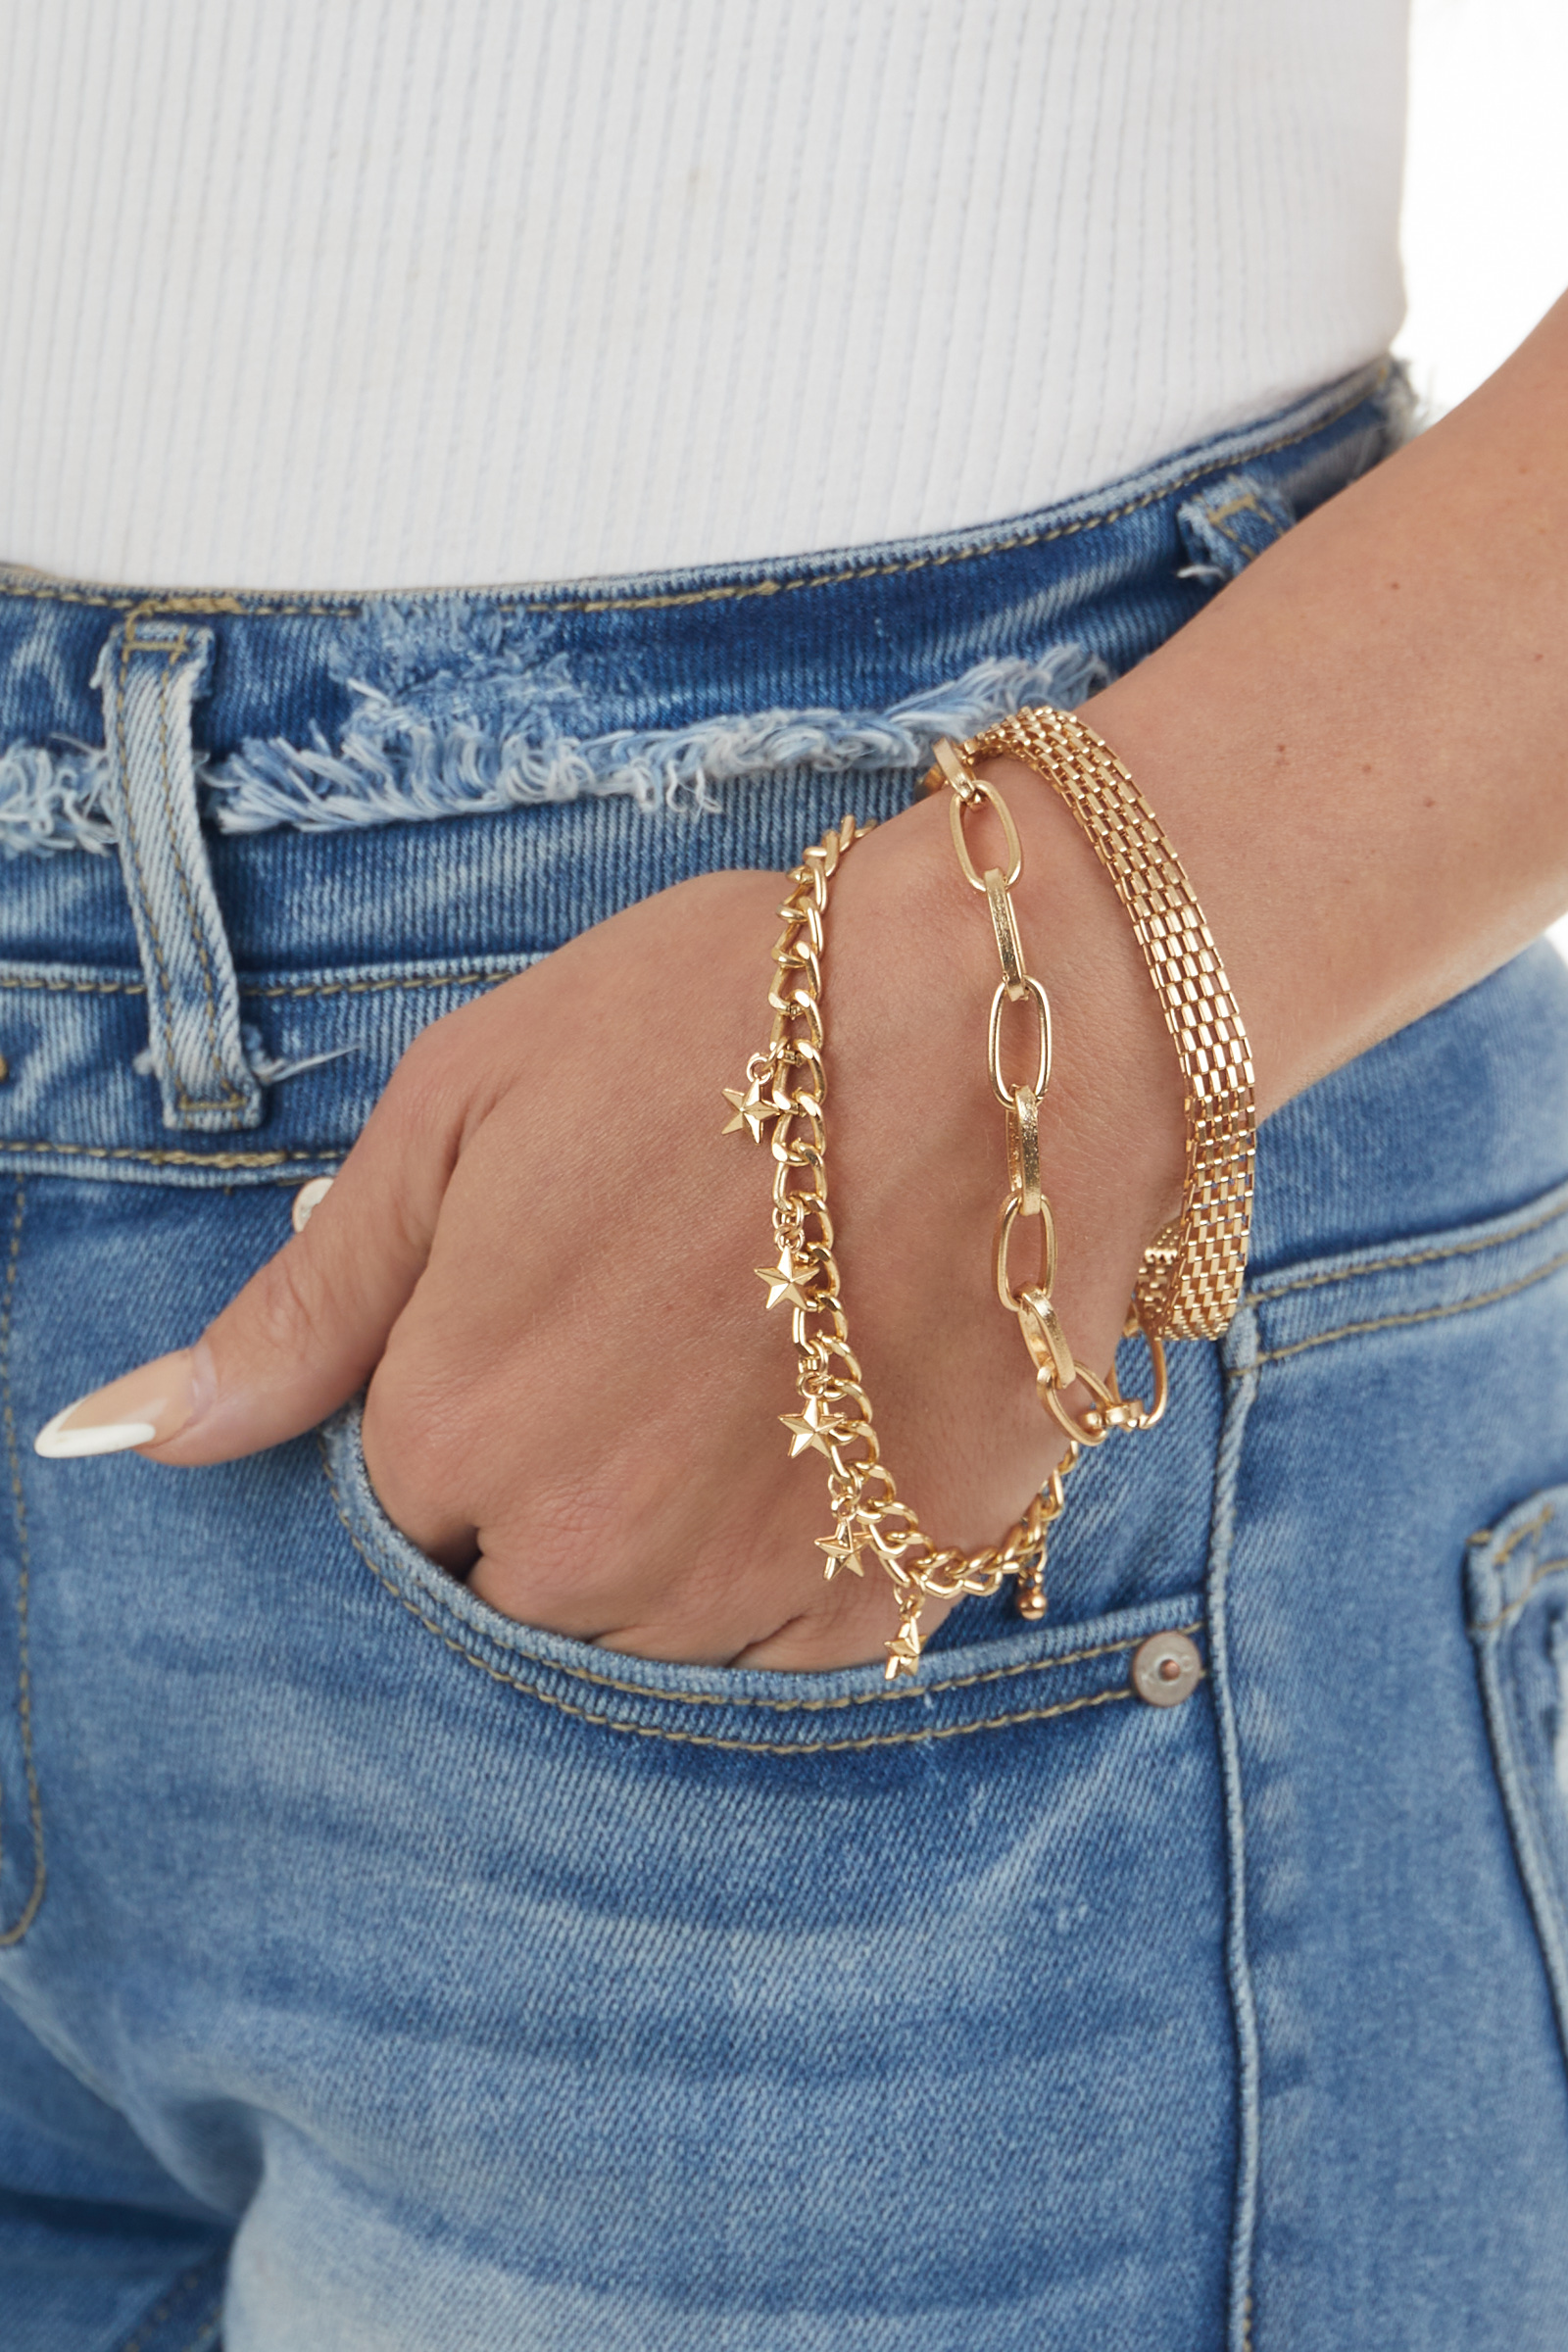 Gold Multi Chain Bracelet with Star Charms